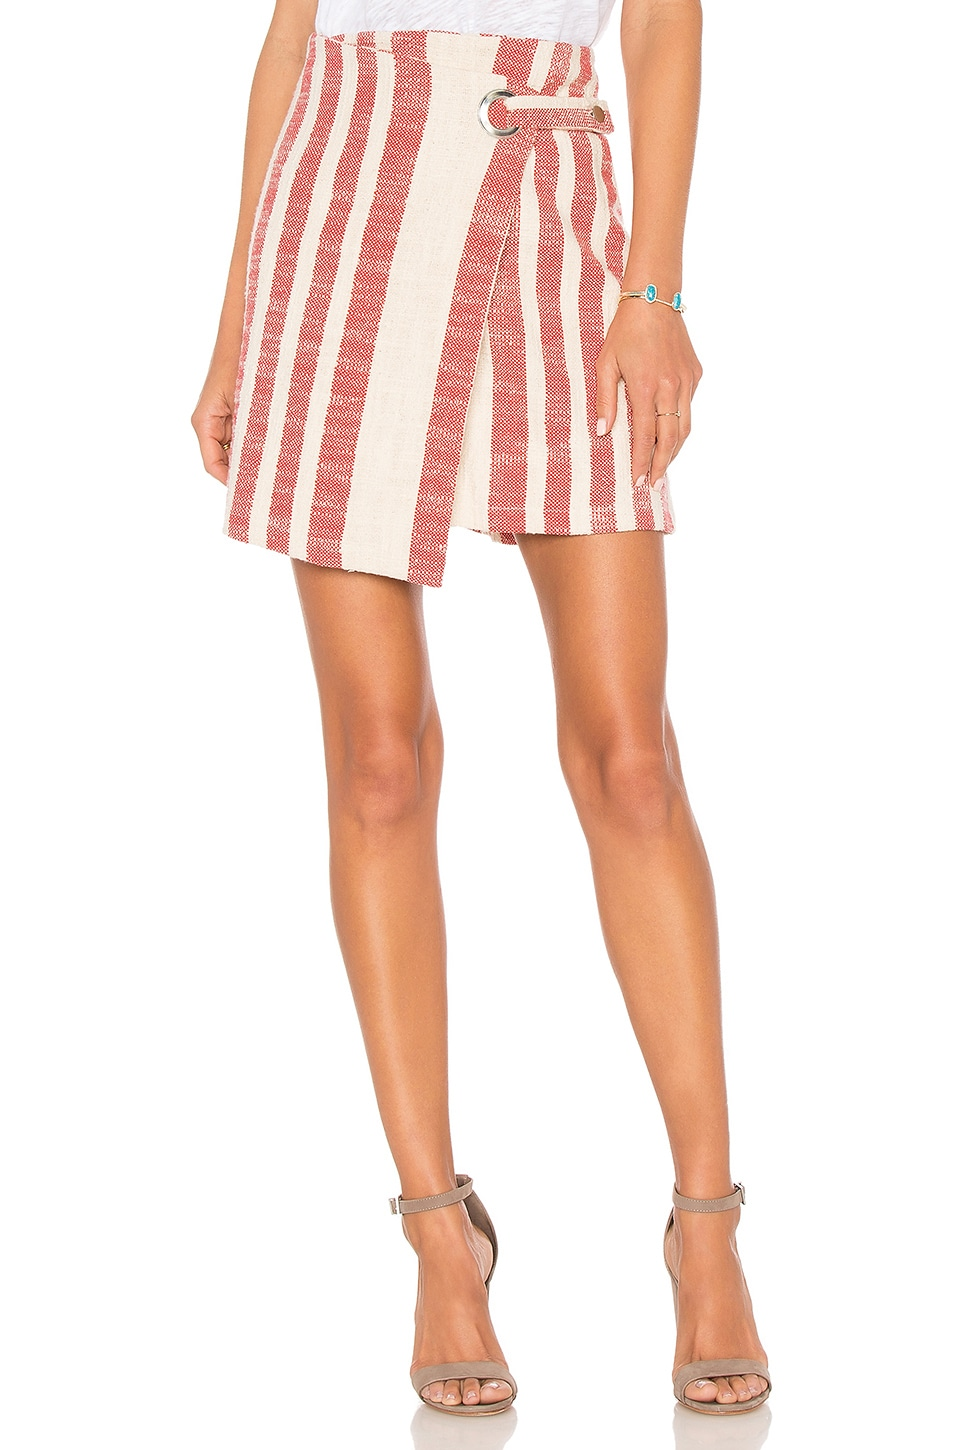 Free People It's A Wrap Skirt in Red